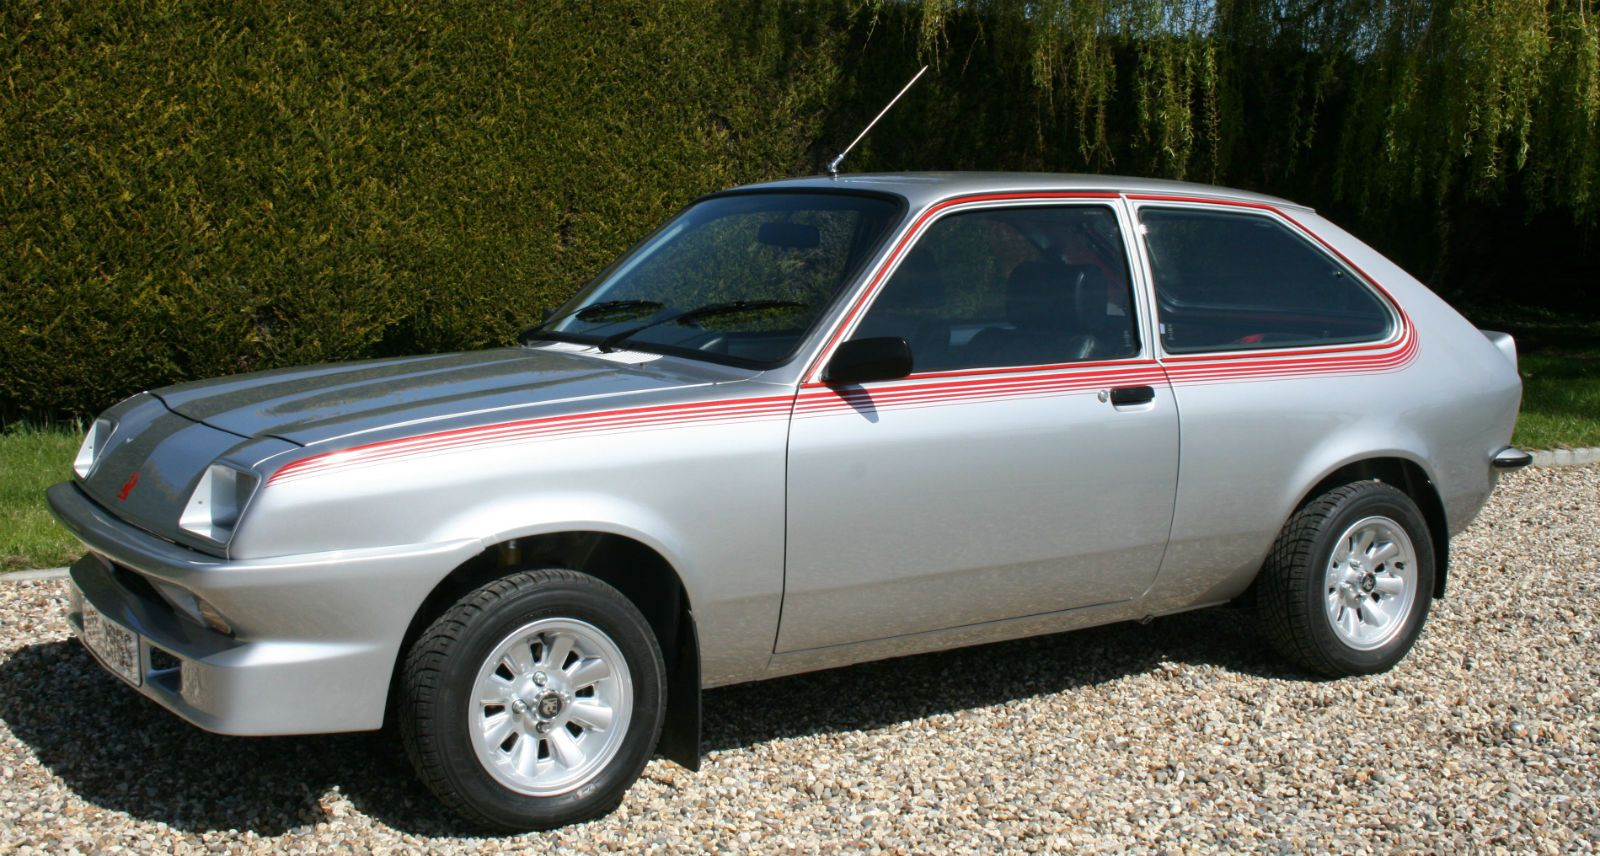 Vauxhall Chevette HS 2300 Concours. Sale Agreed | Cars, Car stuff ...